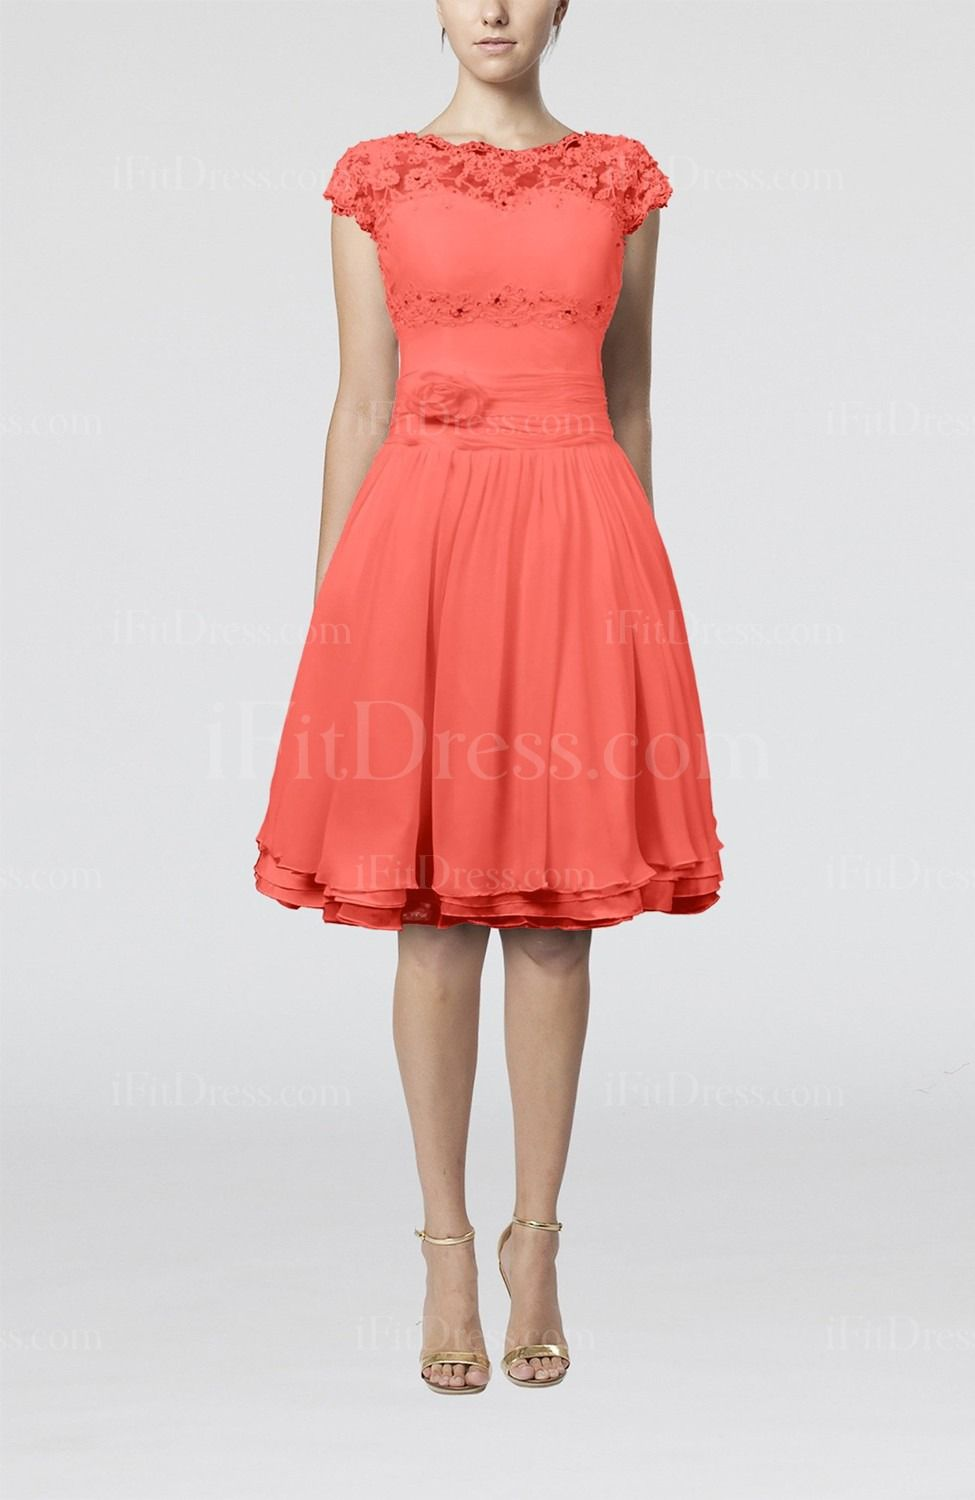 Living Coral Cinderella Scalloped Edge Short Sleeve Chiffon Knee Length Lace Bridesmaid Dresses - iFitDress.com